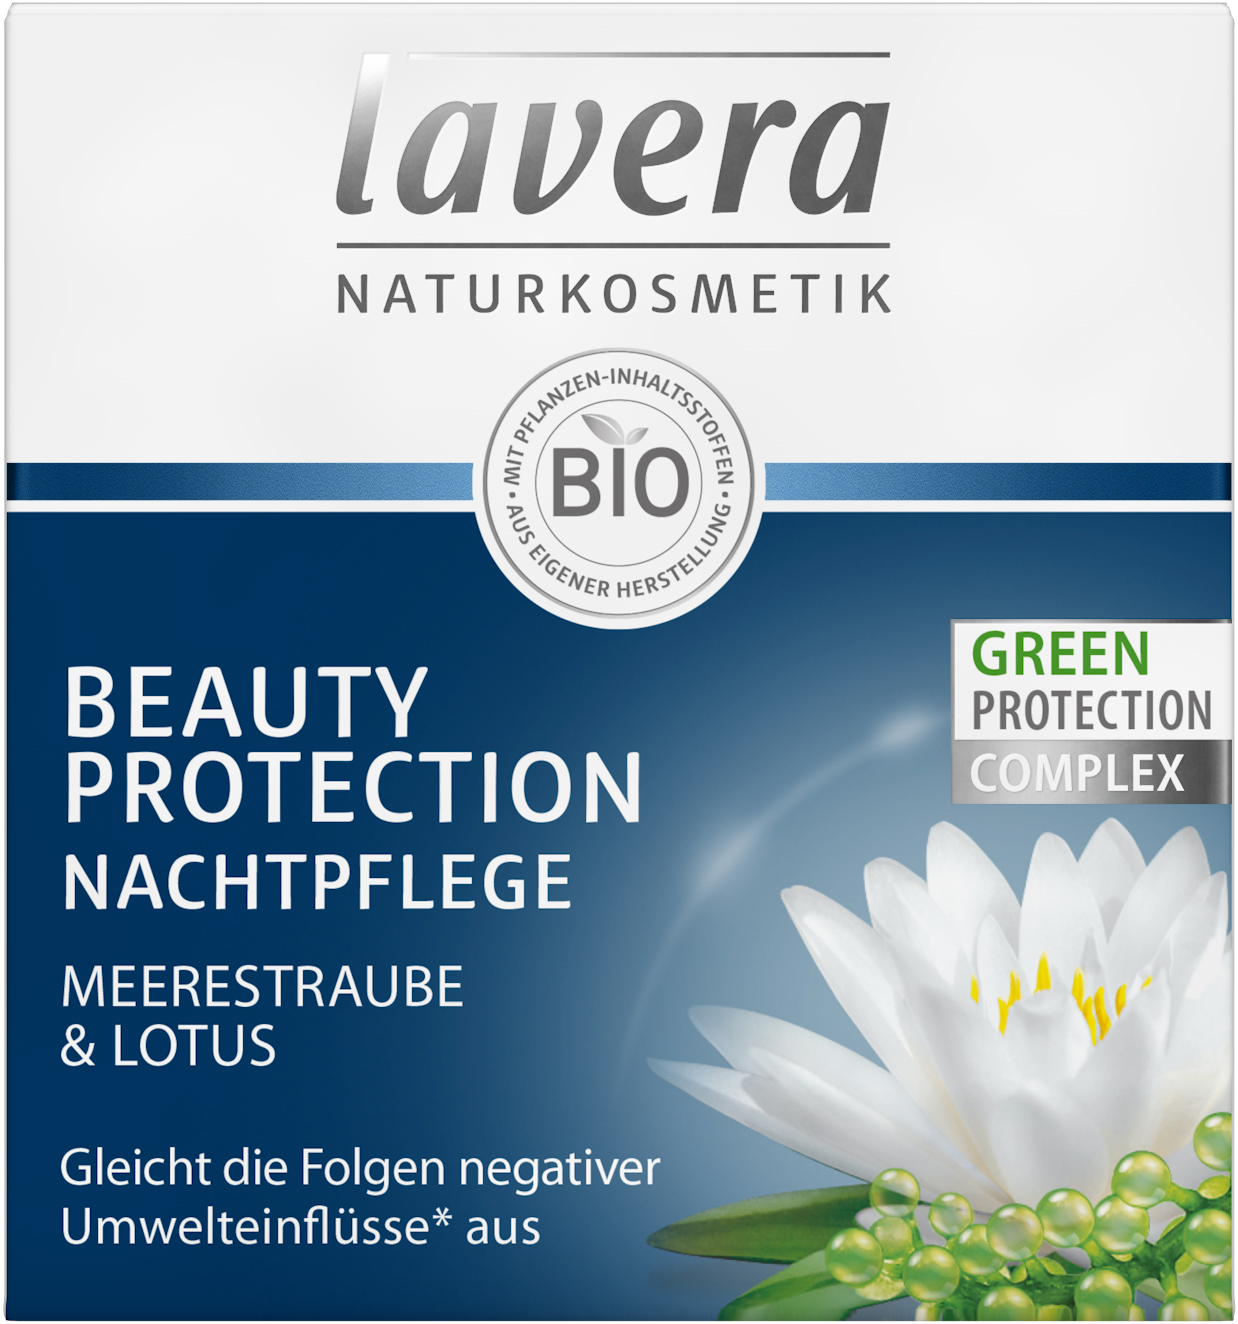 Beauty Protection Nachtpflege